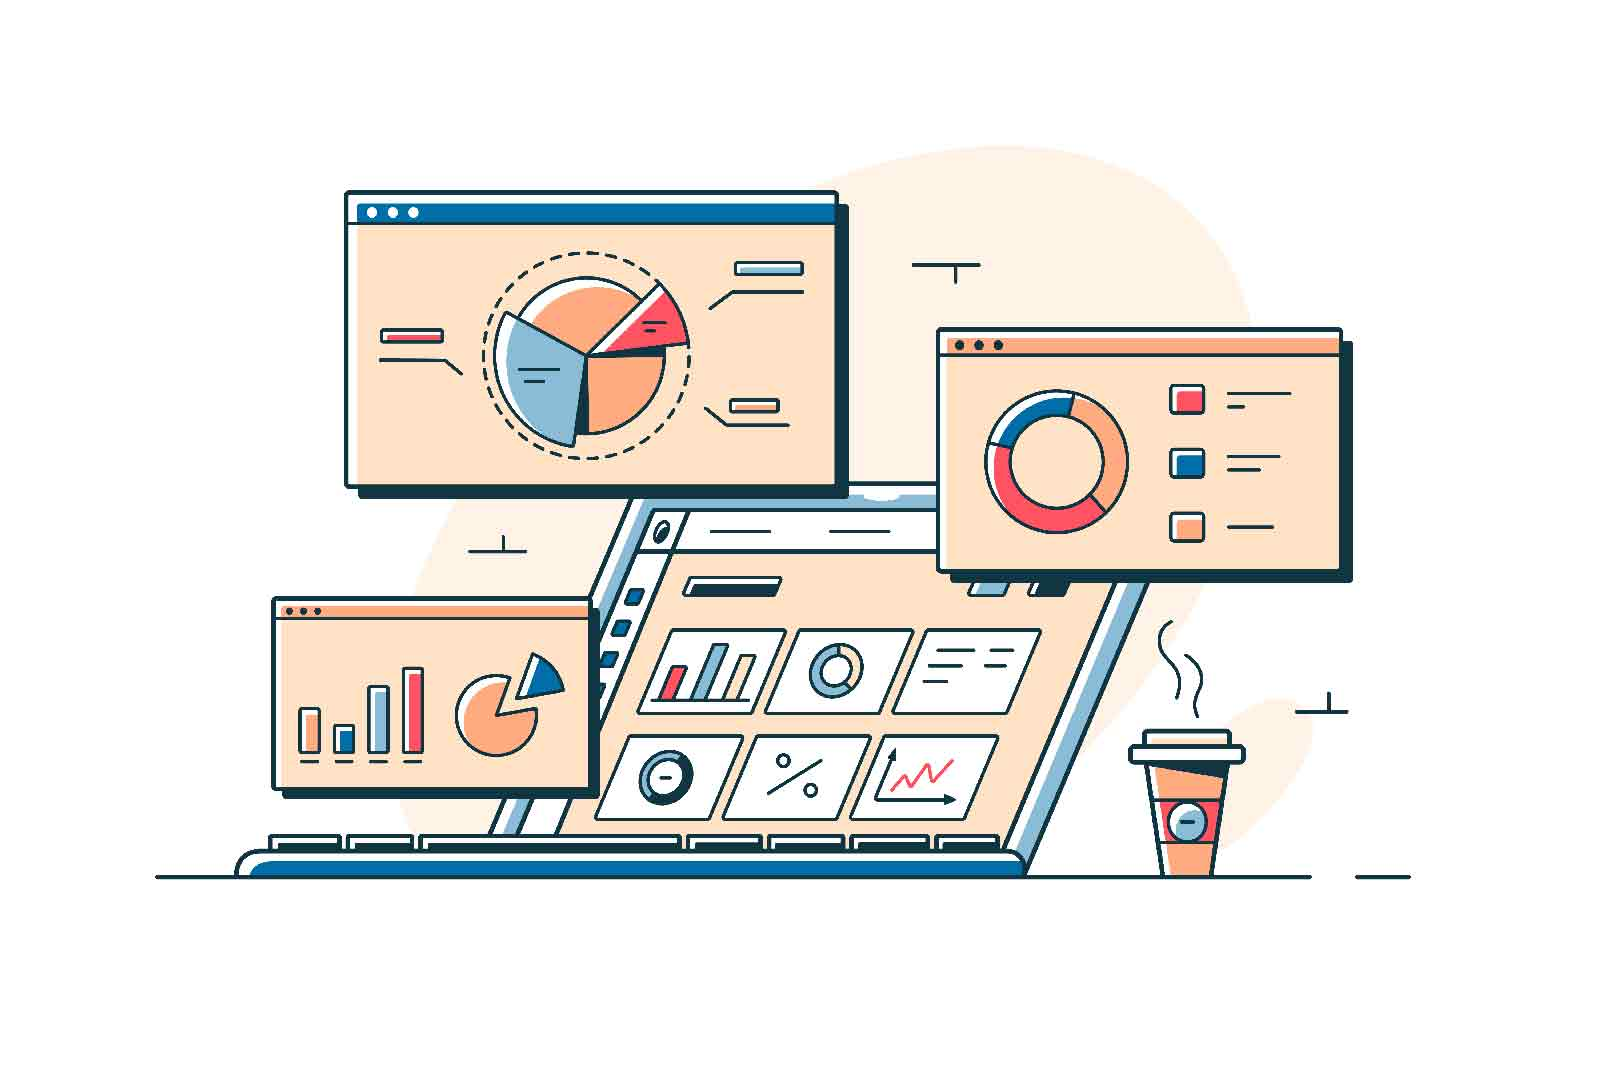 Charts and analyzing statistics on screens vector illustration. Digital device with data visualisation flat style. Infographic dashboard, business statistics concept. Isolated on white background